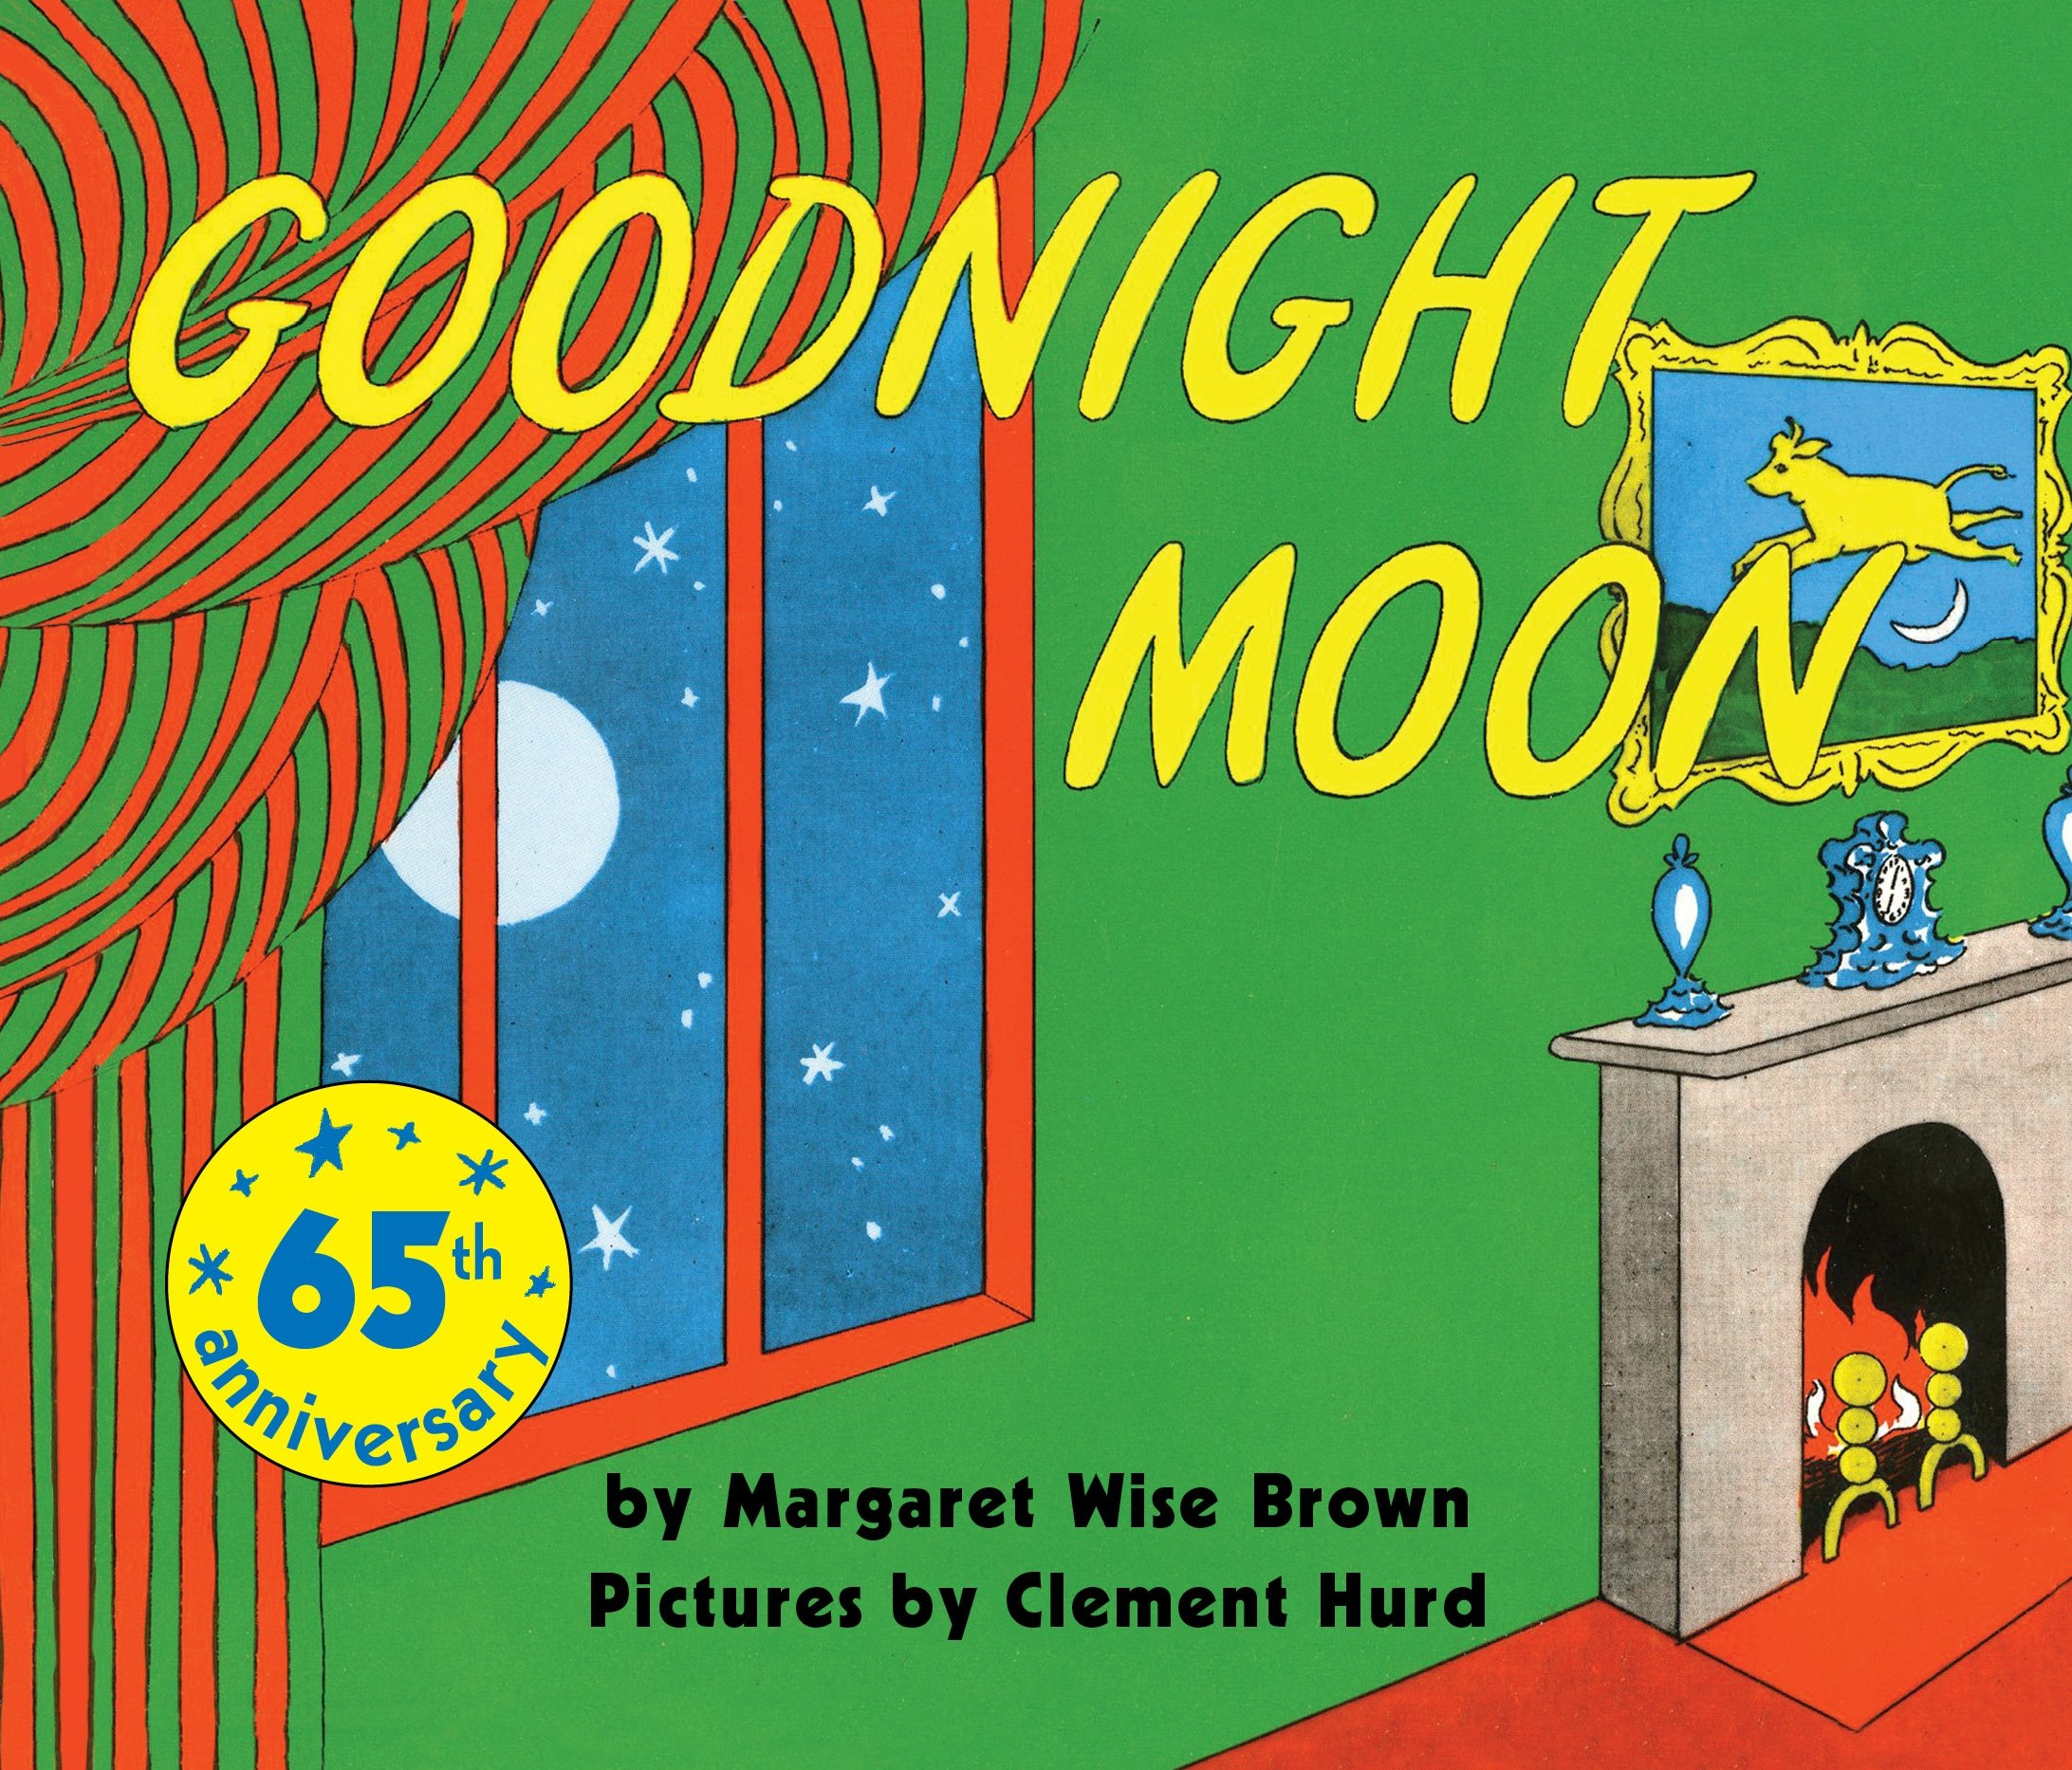 Goodnight Moon: Amazon.co.uk: Wise Brown, Margaret, Hurd, Clement: Books